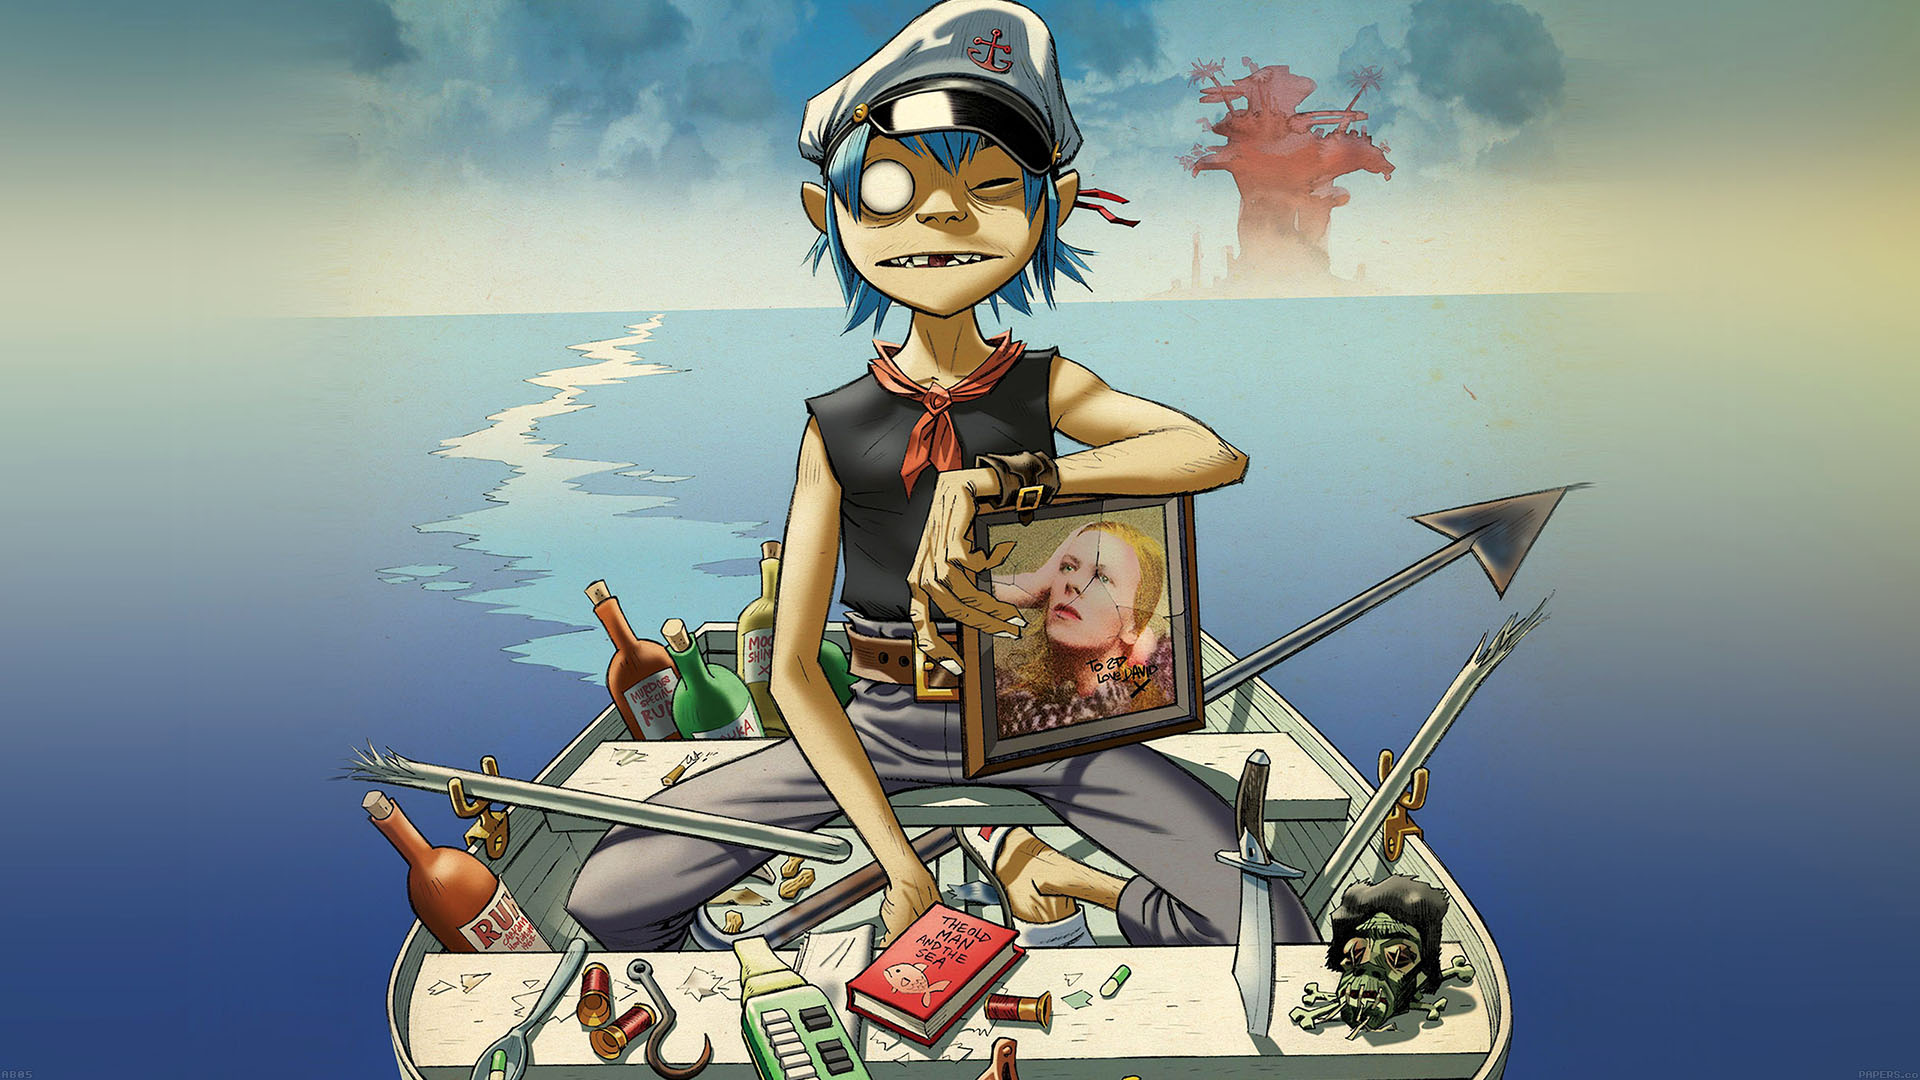 Laptop Wallpapers Fall Ab05 Wallpaper Gorillaz Boat Illust Music Papers Co